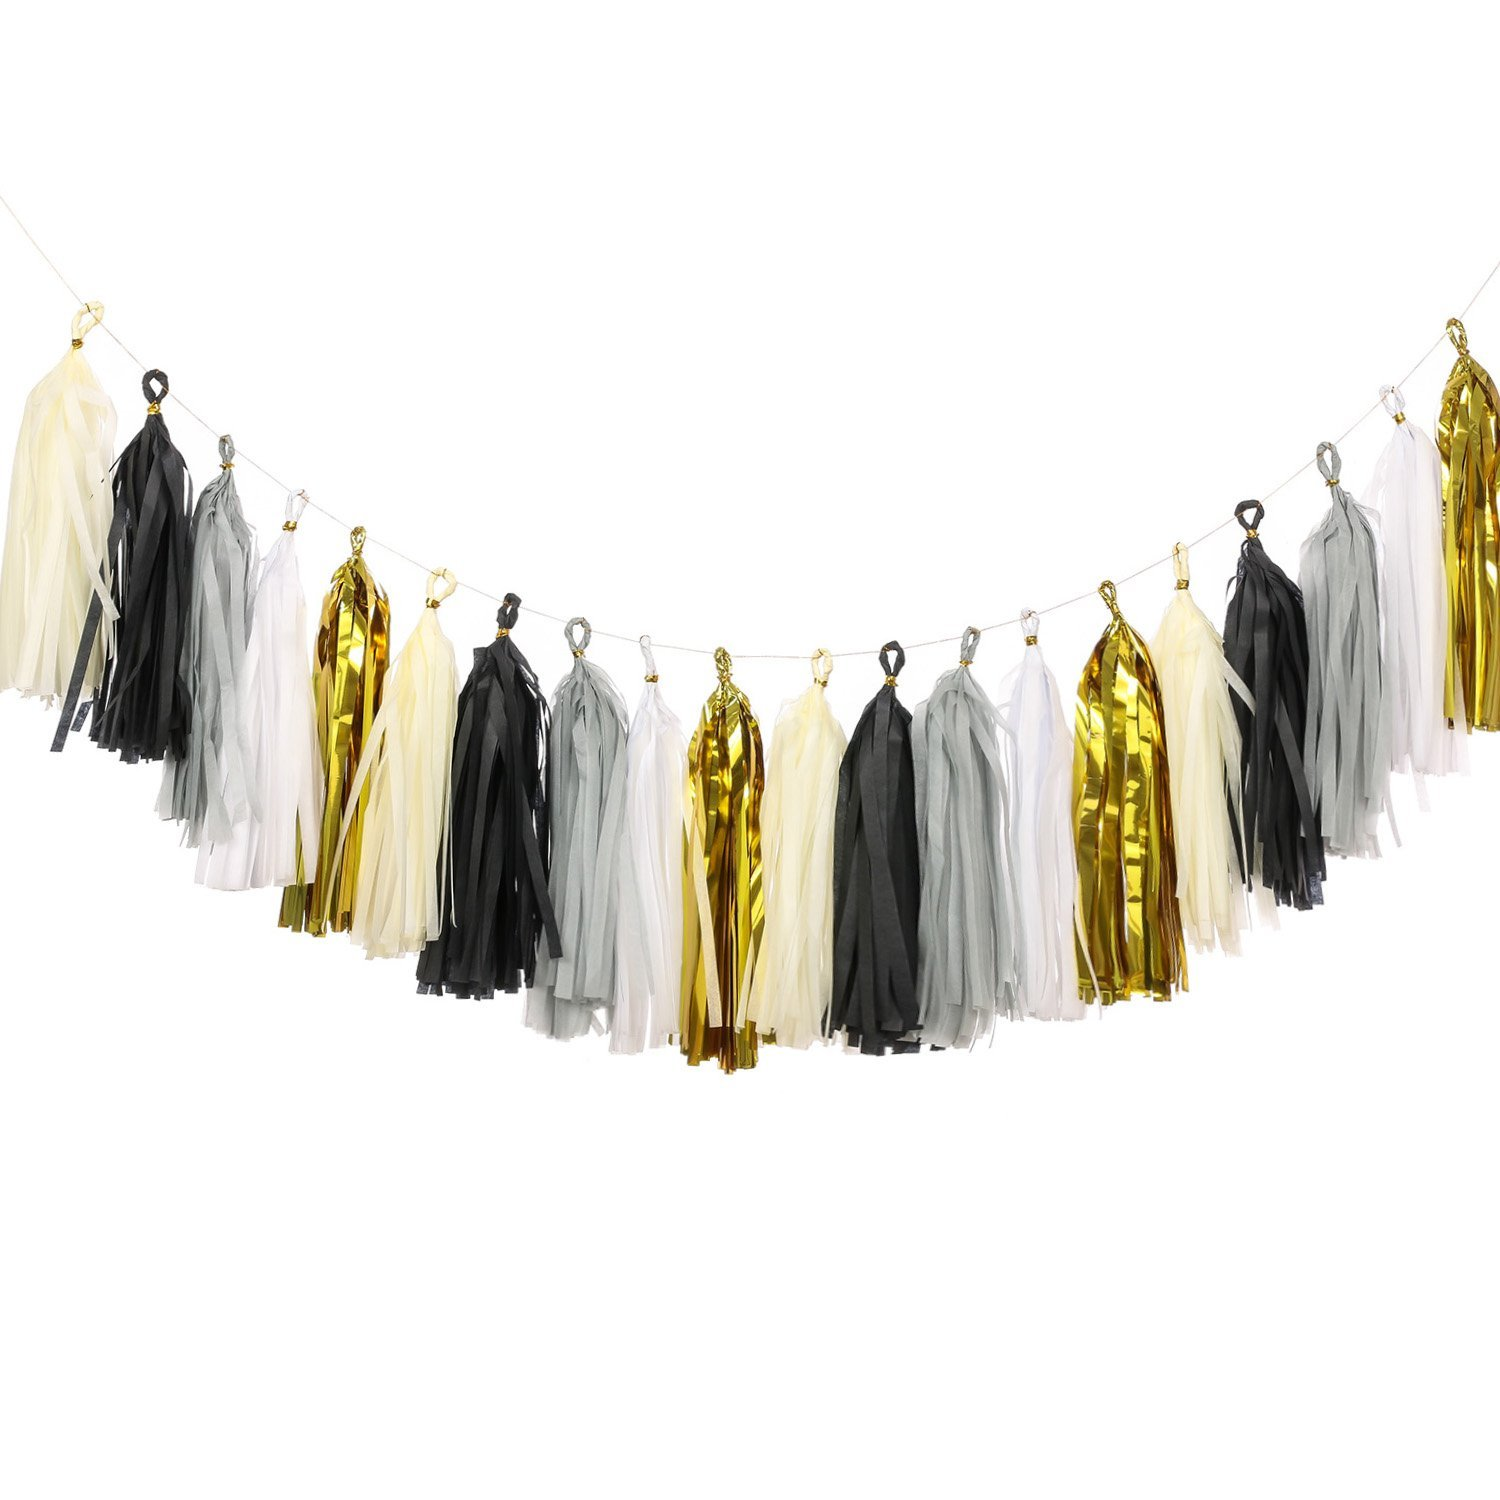 Ling's moment 20pcs Tassel Banner Tissue Paper Tassels, Fiesta Fringe Garland, Black & Gold Garland for Graduation Wedding Birthday Party& Event DIY Kits - (Metallic Gold+Black+White+Gray+Ivory)